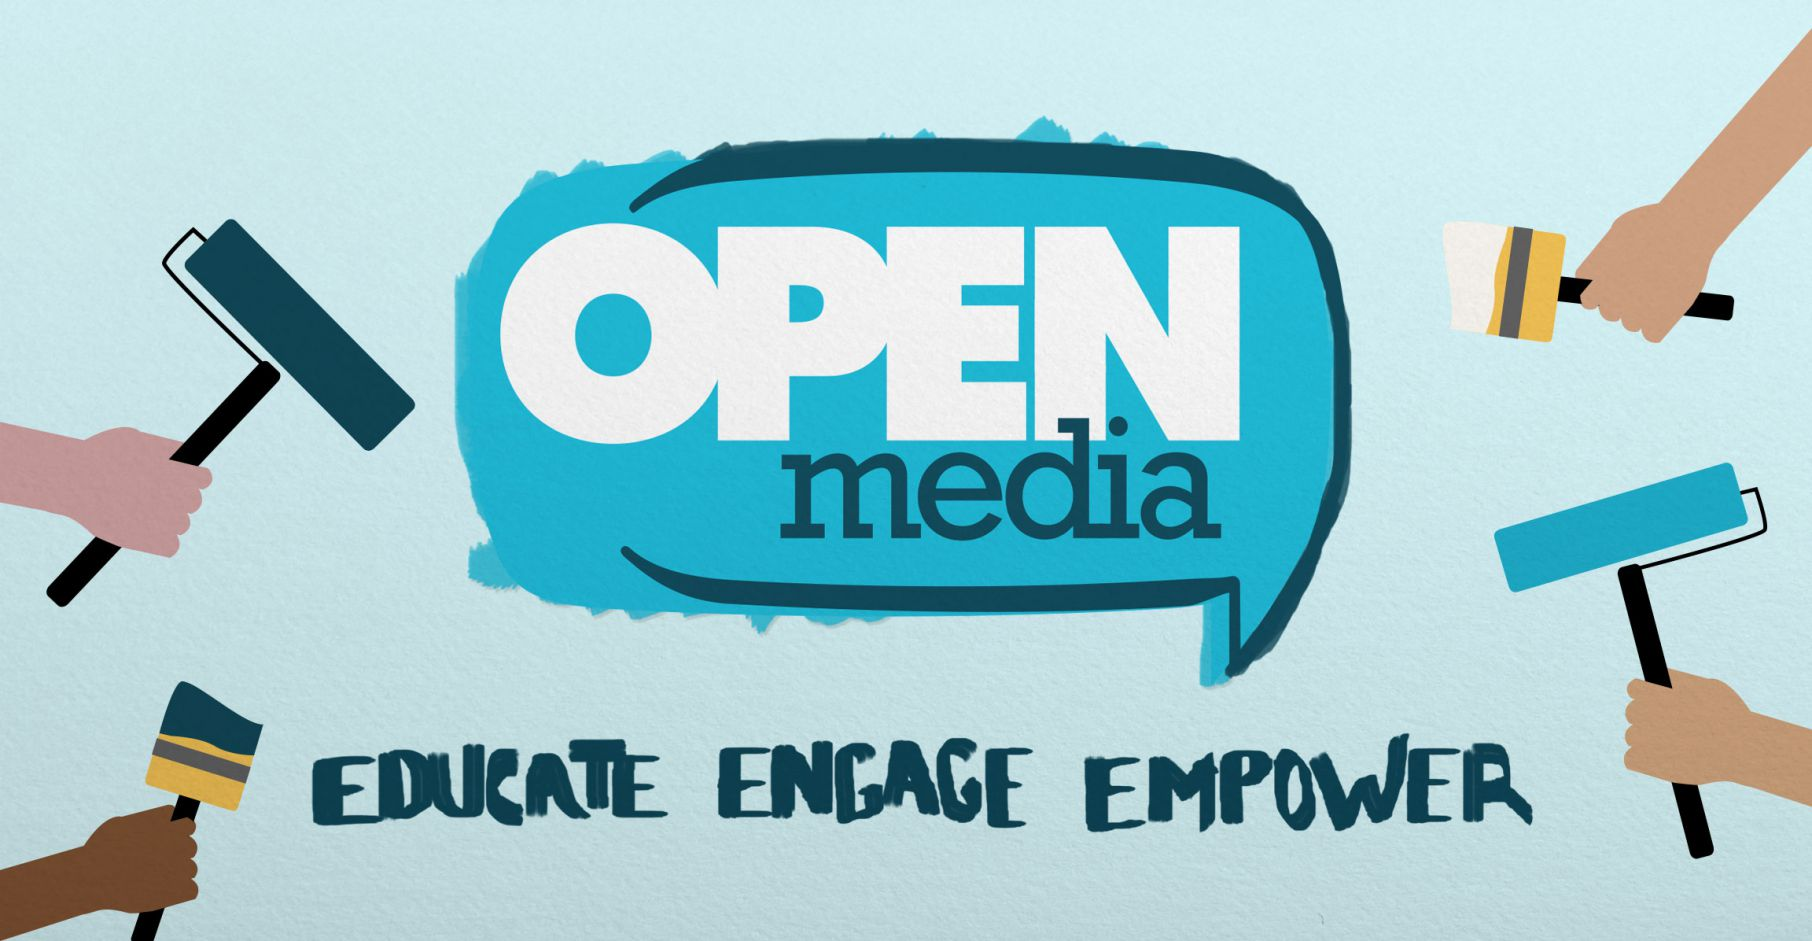 OpenMedia: Educate, Engage, Empower